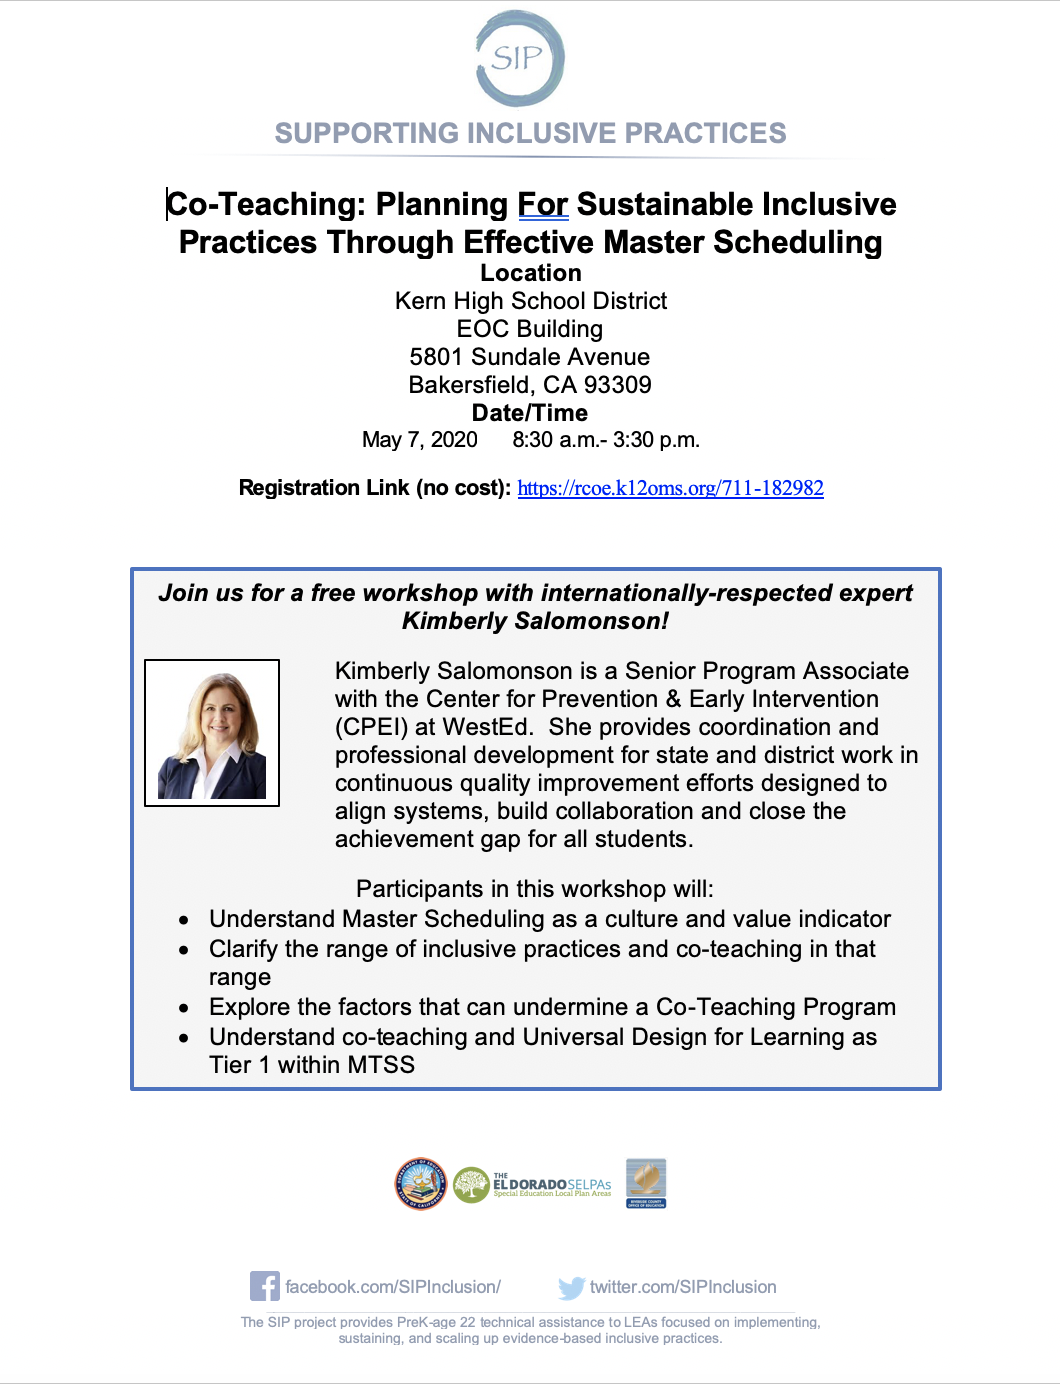 Co-Teaching: Planning For Sustainable Inclusive Practices Through Effective Master Scheduling